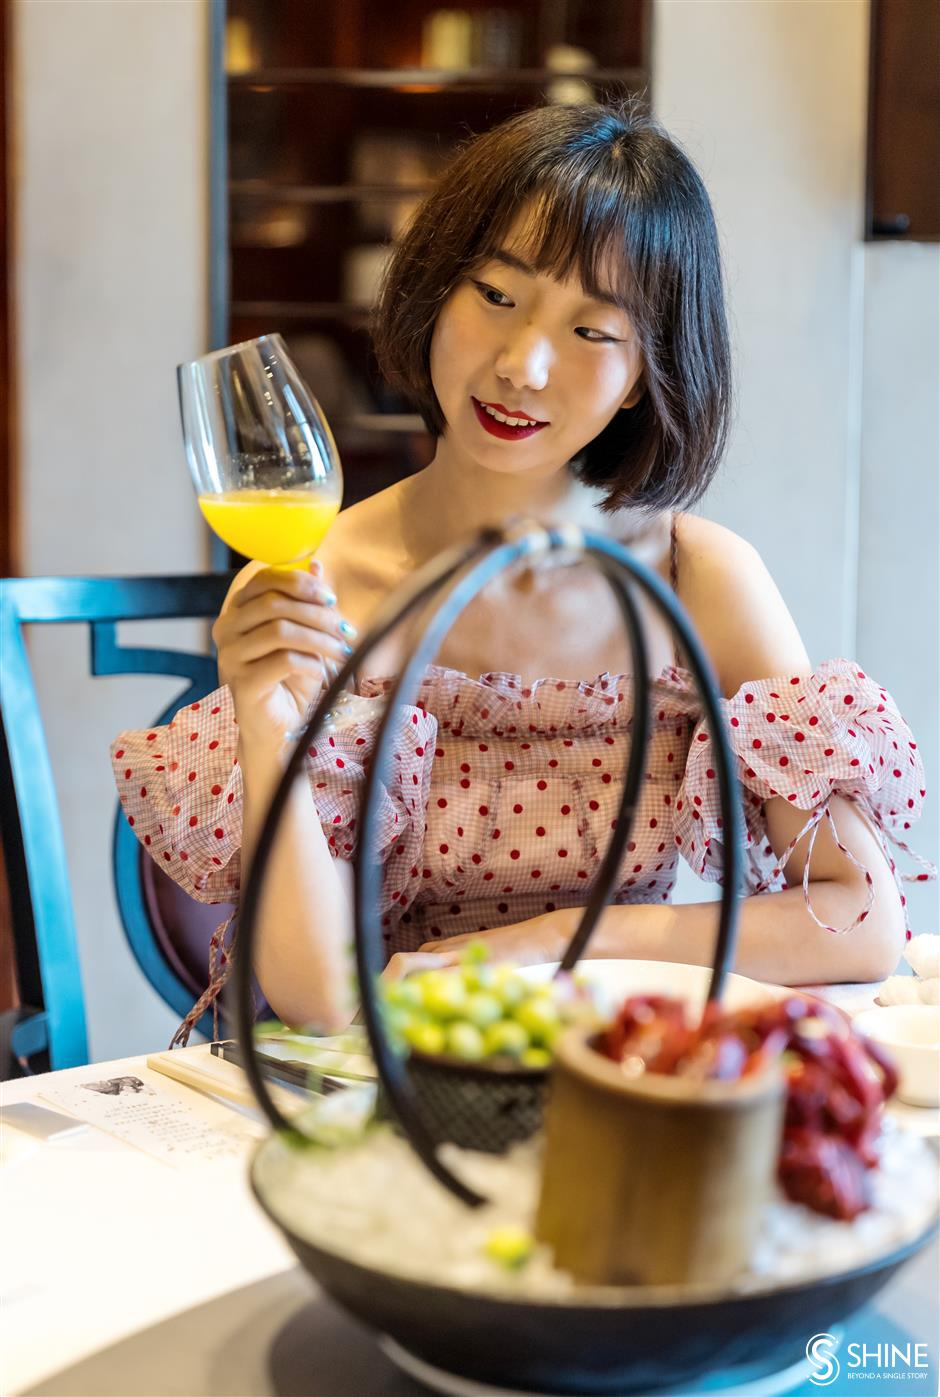 Ningbo is becoming a new summer hotspot for tourism